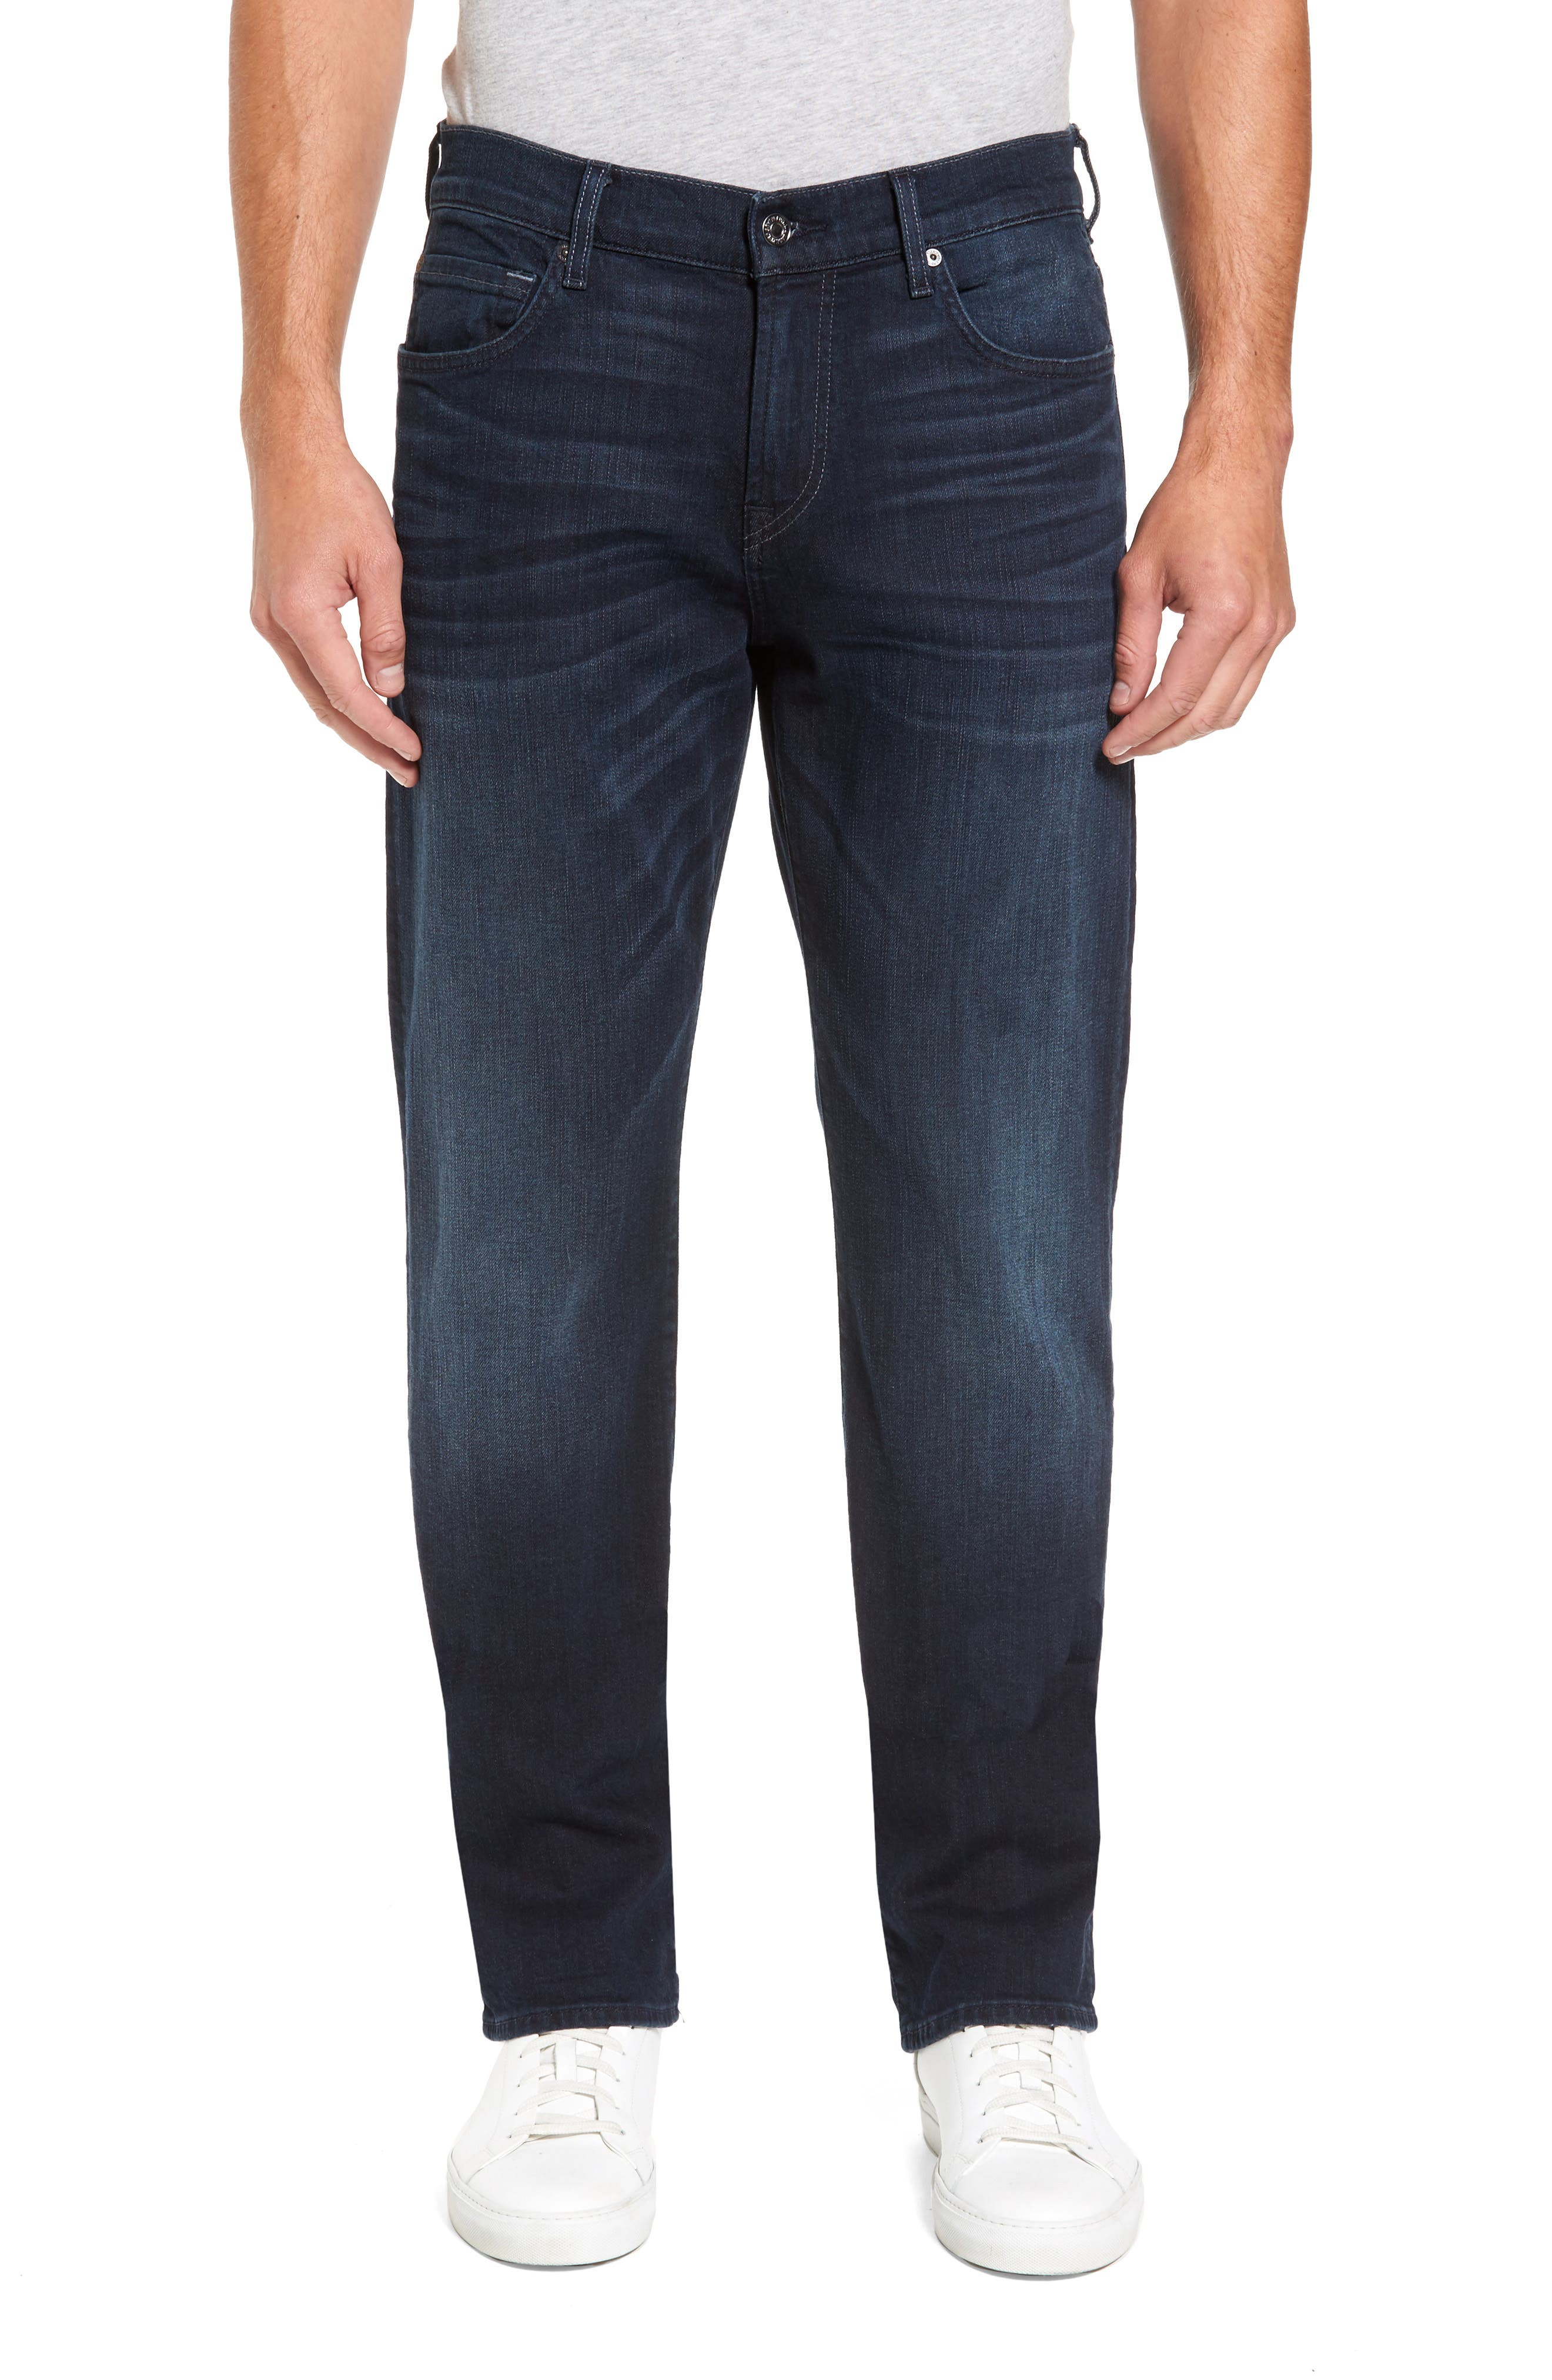 7 FOR ALL MANKIND<SUP>®</SUP>, Luxe Performance - Carsen Straight Leg Jeans, Main thumbnail 1, color, DARK CURRENT